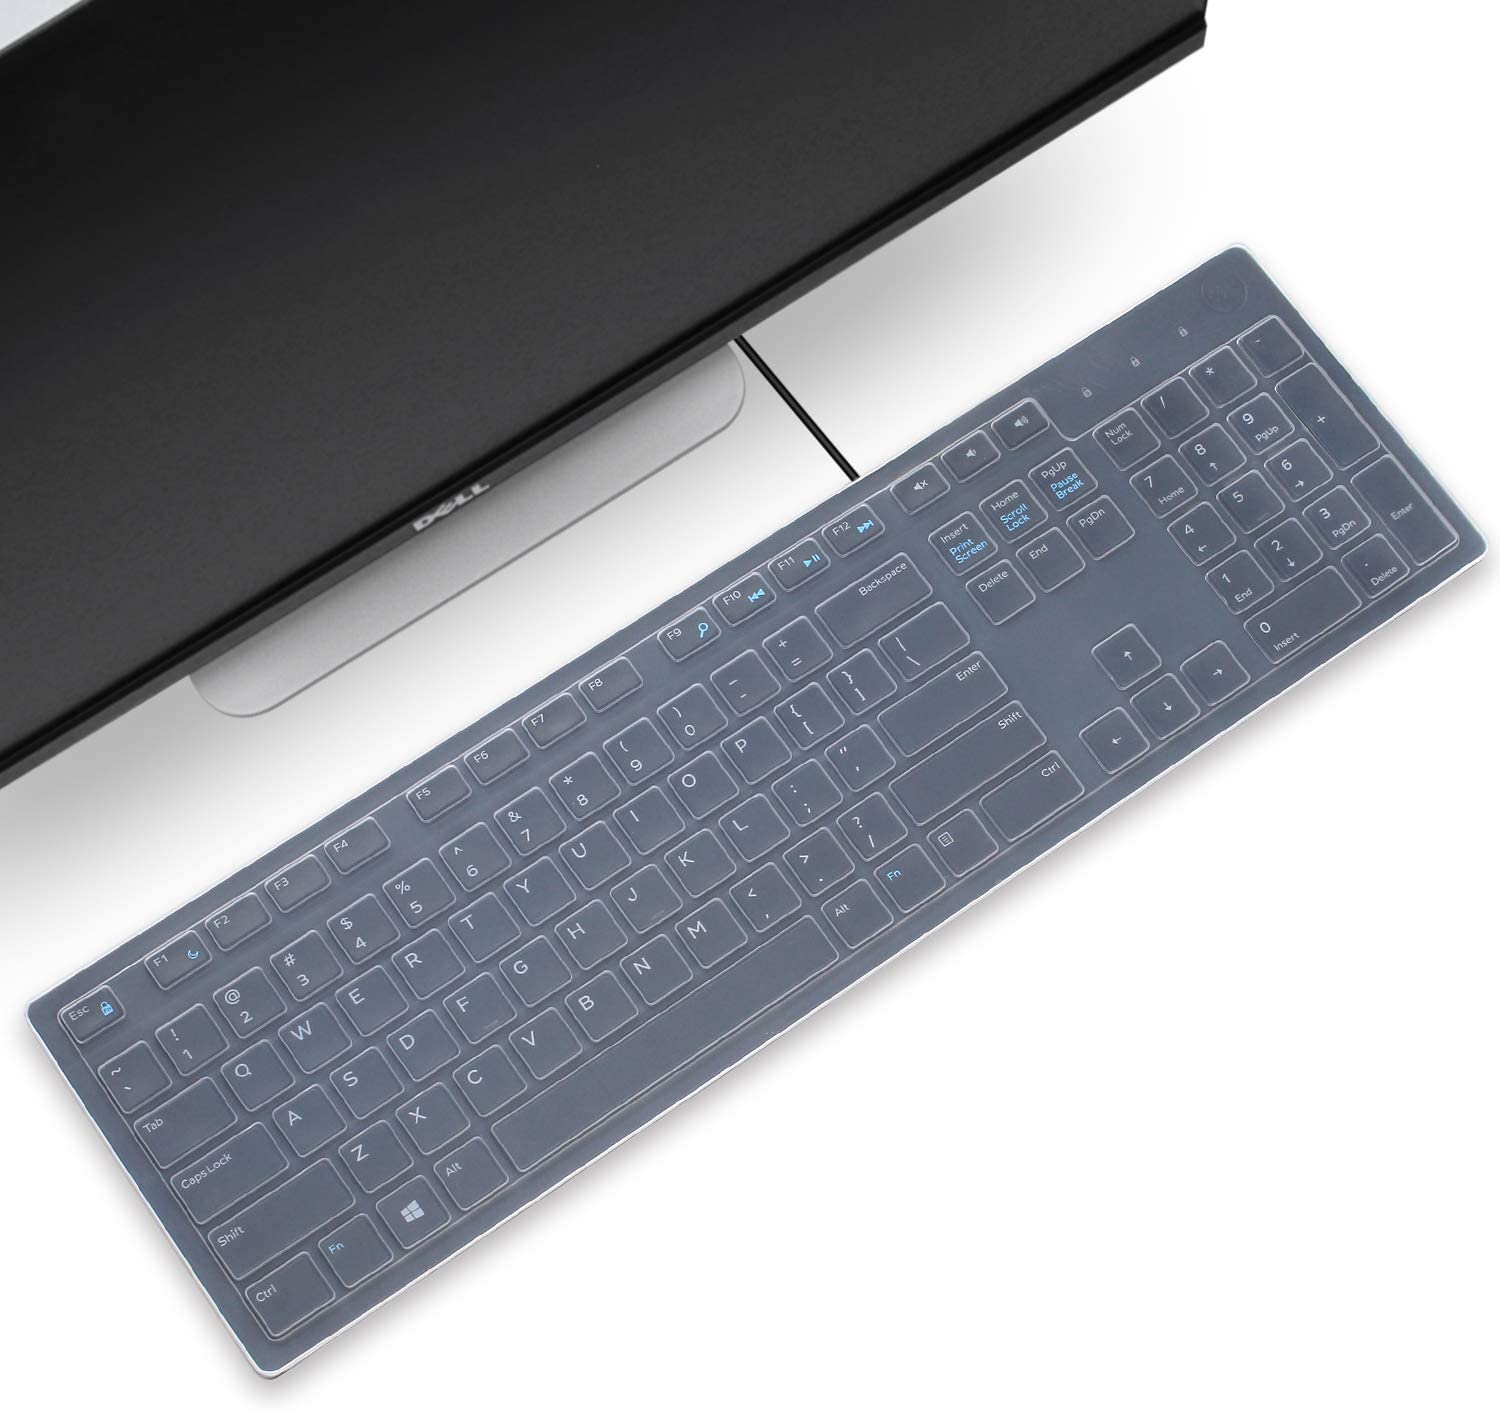 Silicone Keyboard Cover Skin for DELL KM636 Wireless & KB216 Wired Keyboard & Optiplex 5250 3050 3240 5460 7450 7050 & Inspiron AIO 3475 3670 3477 All-in one Desktop Accessories Protective Skin